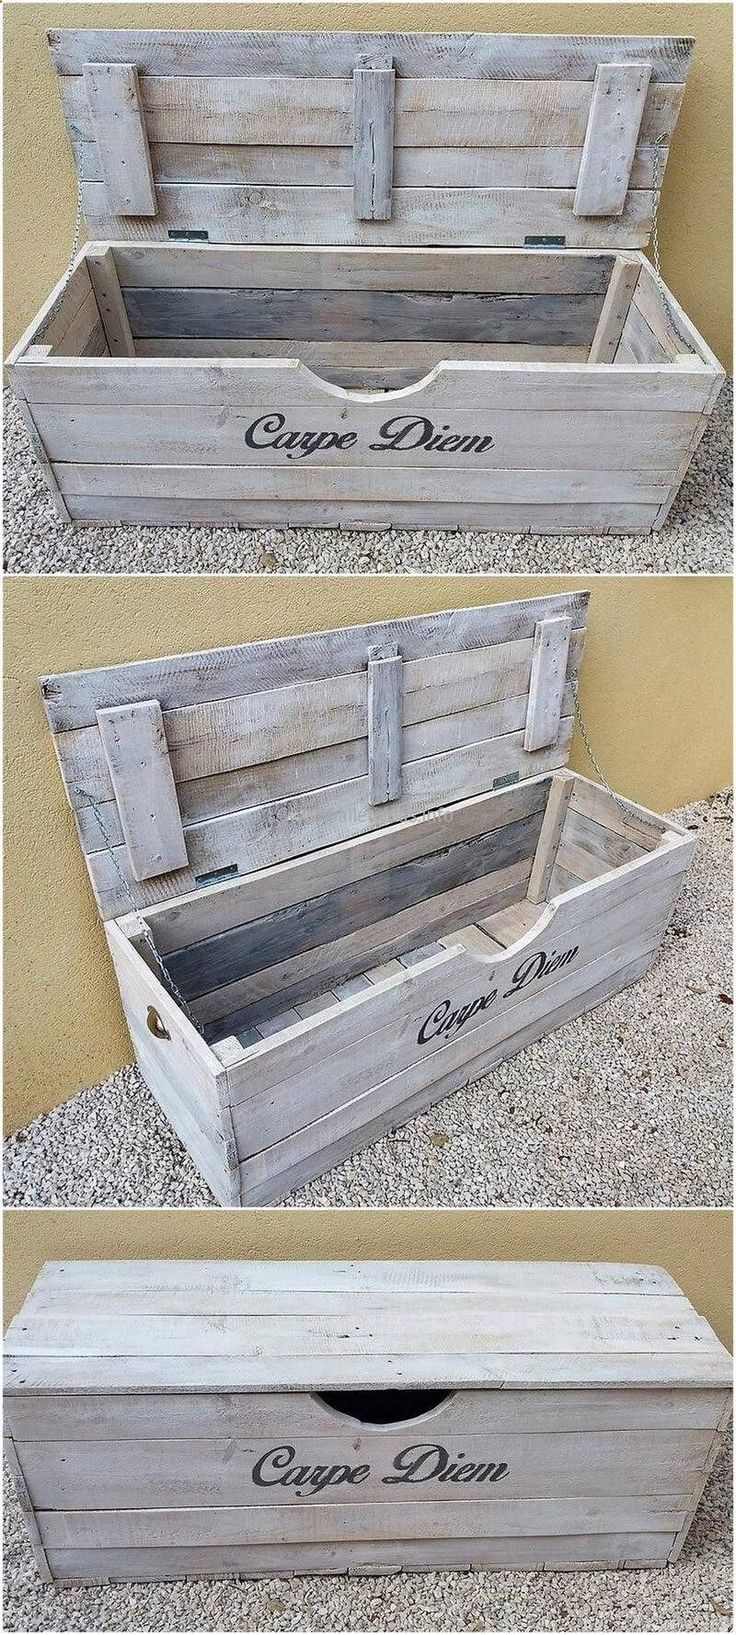 Teds Wood Working - wooden pallets kids toy box - Get A Lifetime Of Project Ideas & Inspiration! #WoodProjectsDiyToys